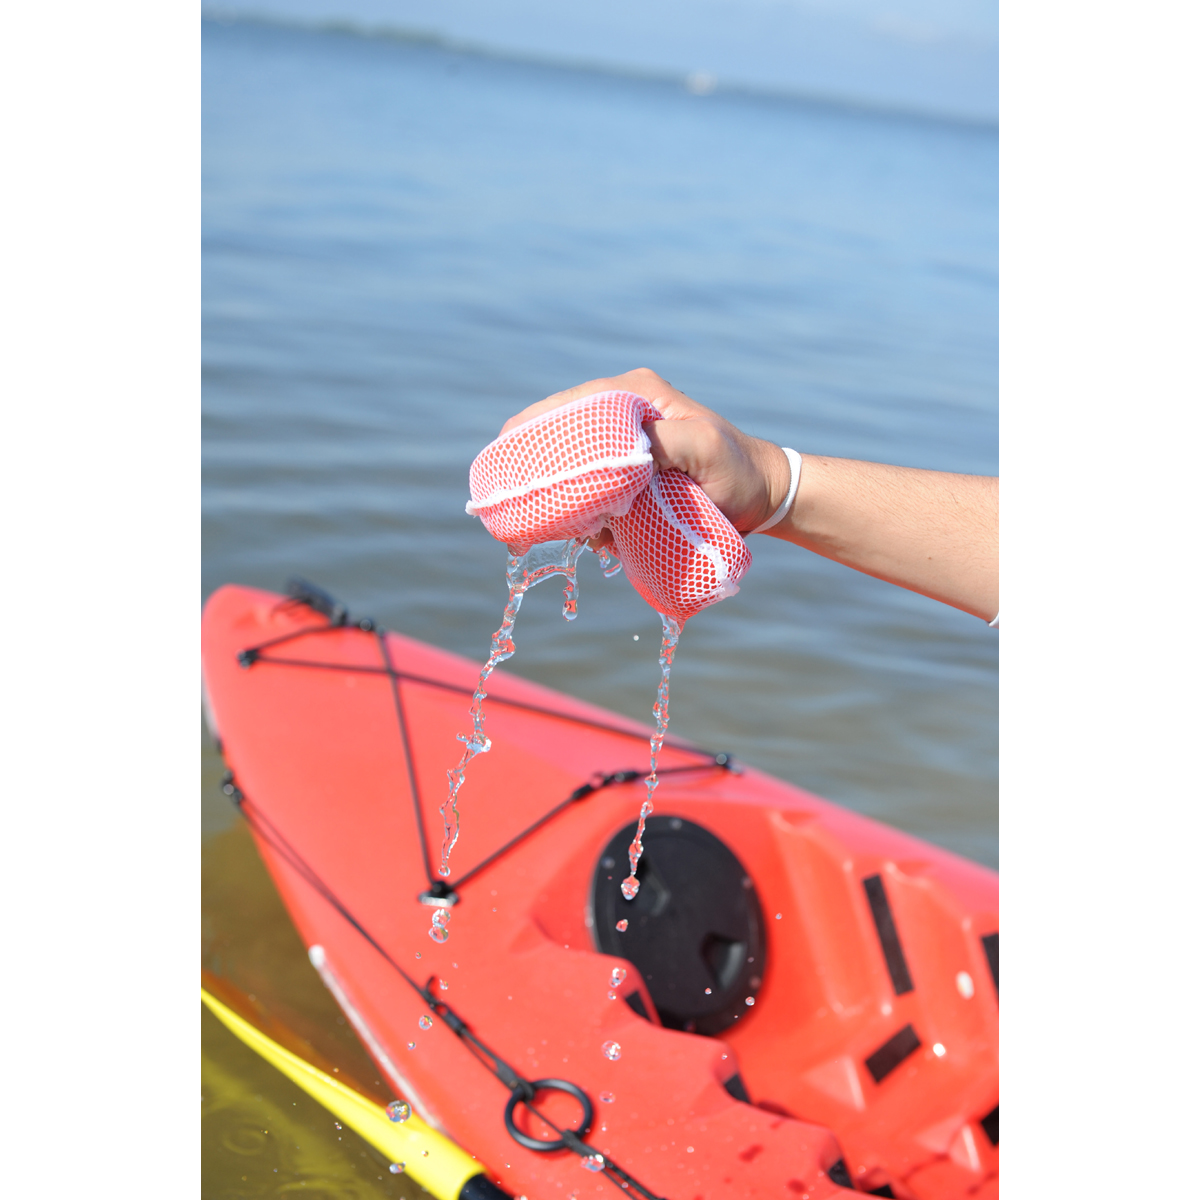 Propel Paddle Gear Kayak Sponge with Elastic Lanyard